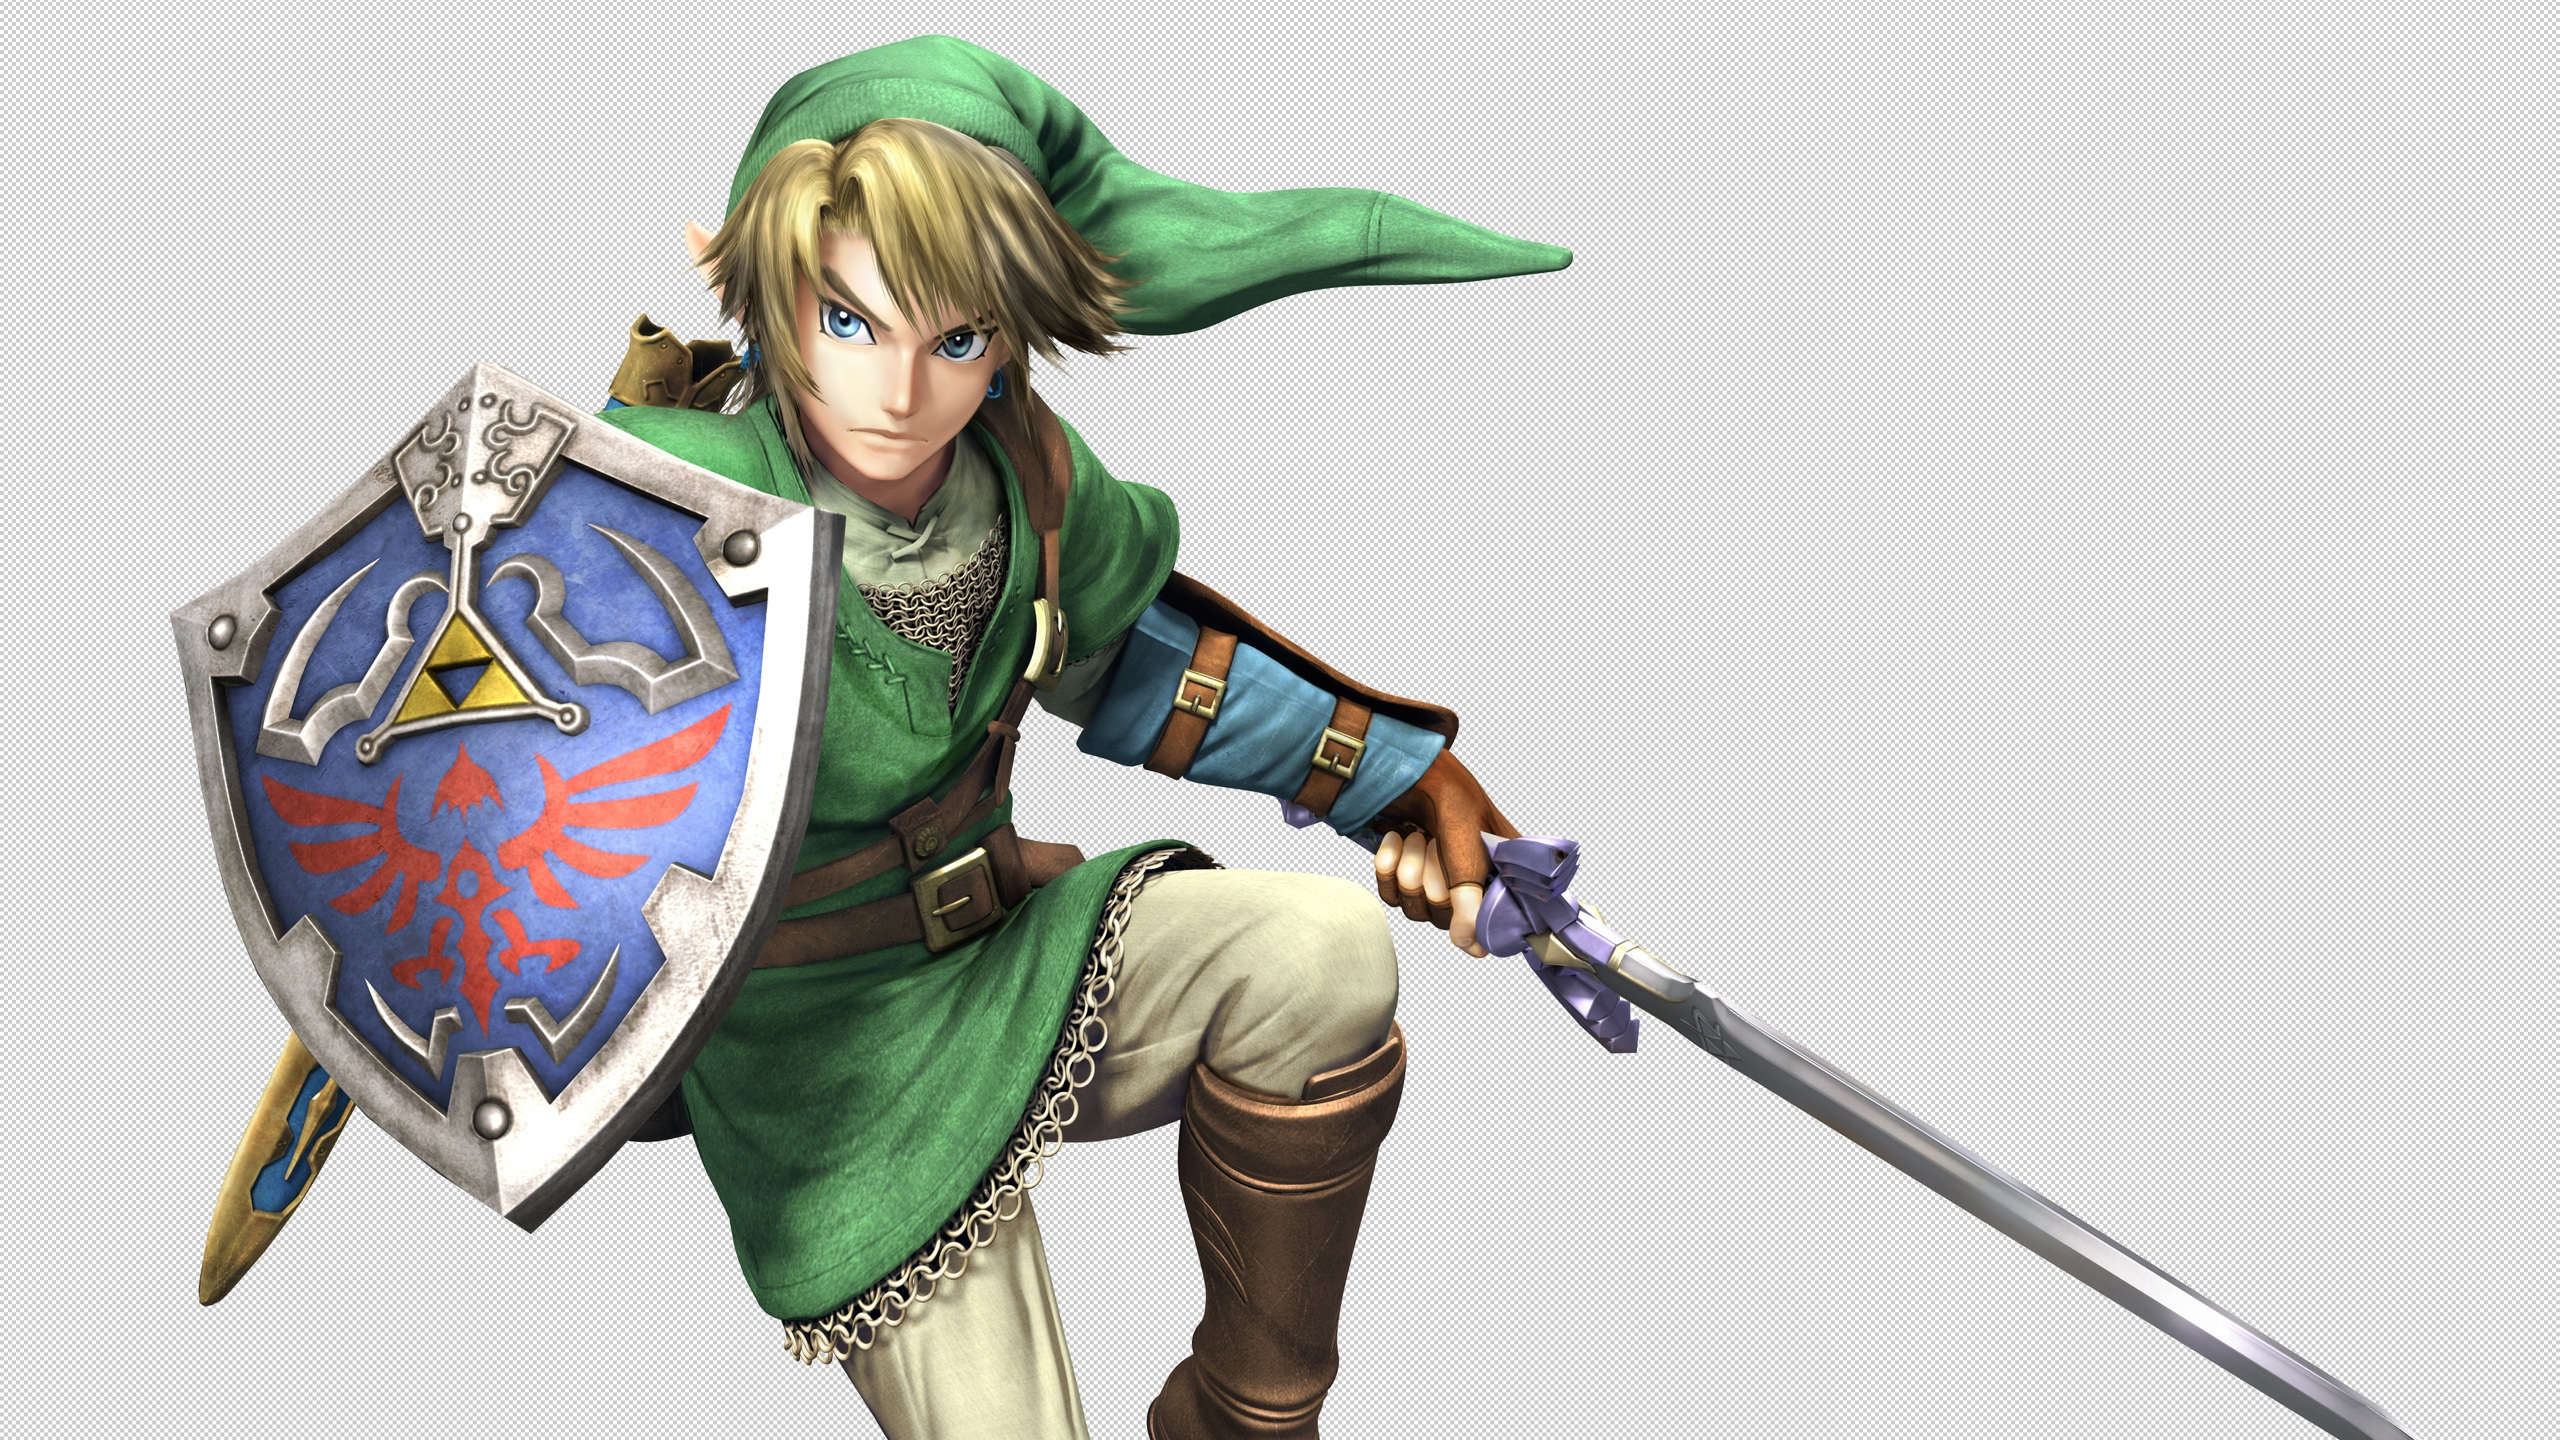 Wallpaper The Legend Of Zelda Japanese Game 2560x1440 Qhd Picture